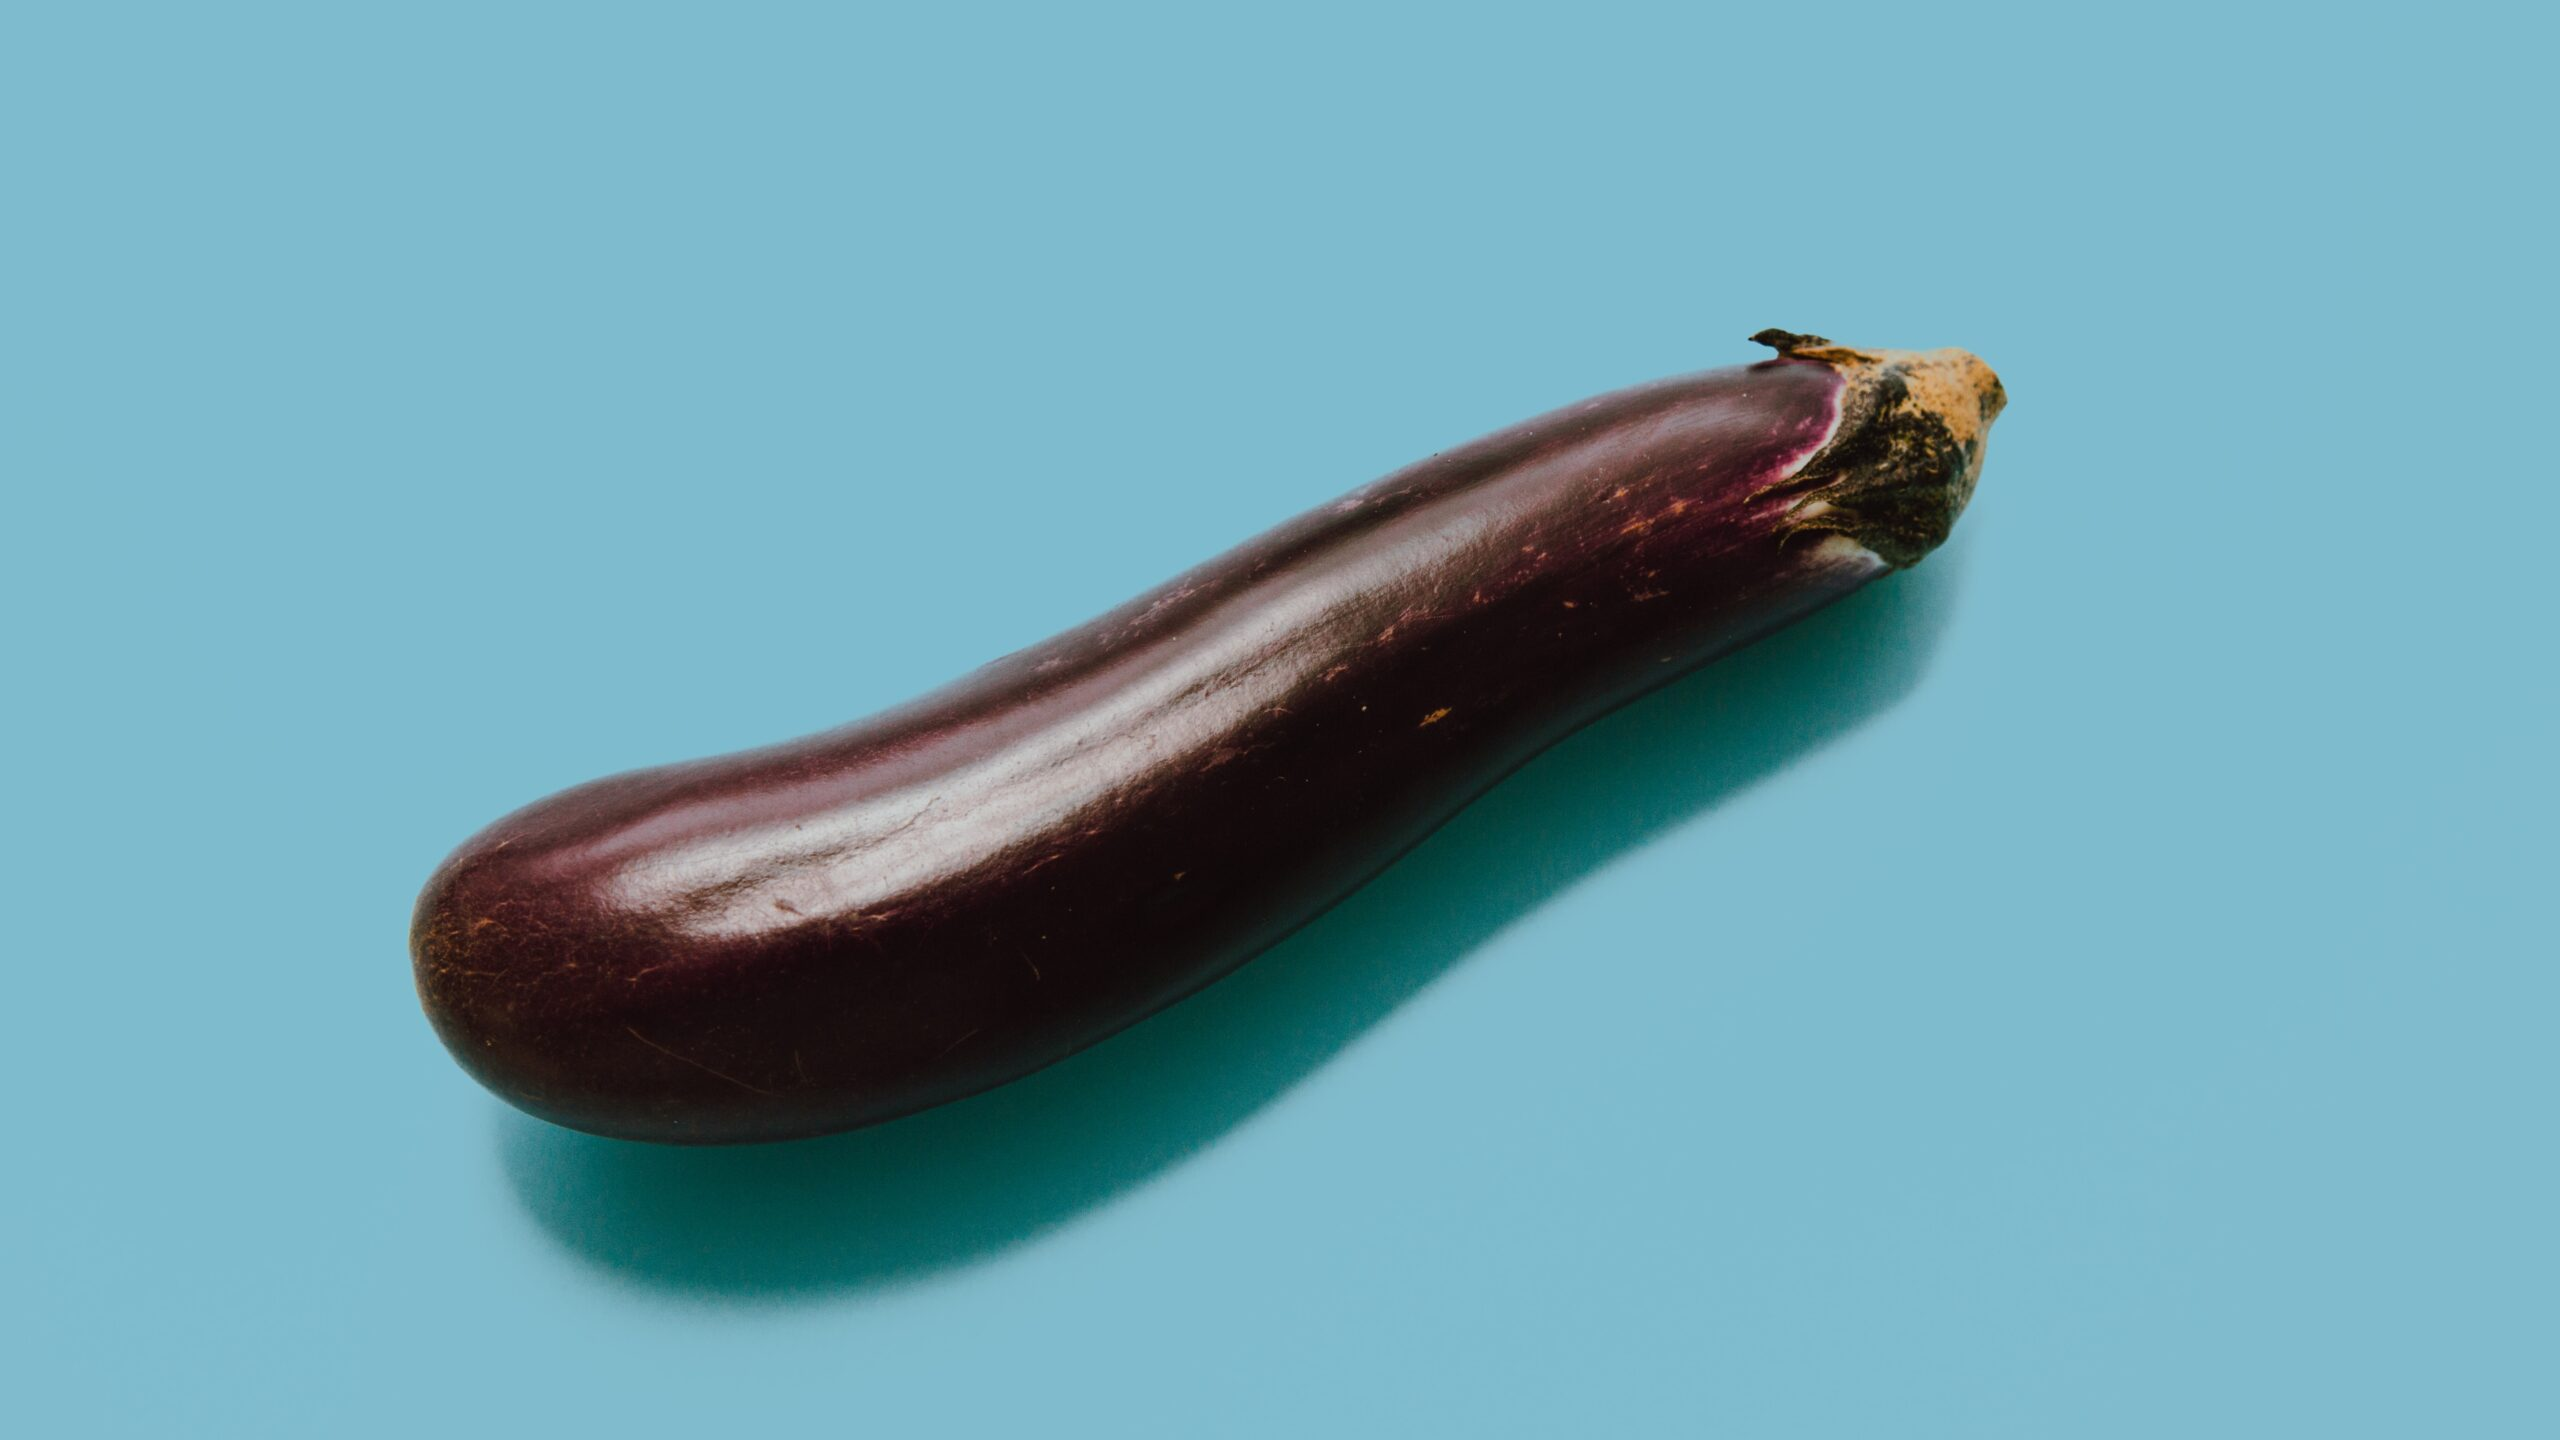 brown eggplant on teal surface